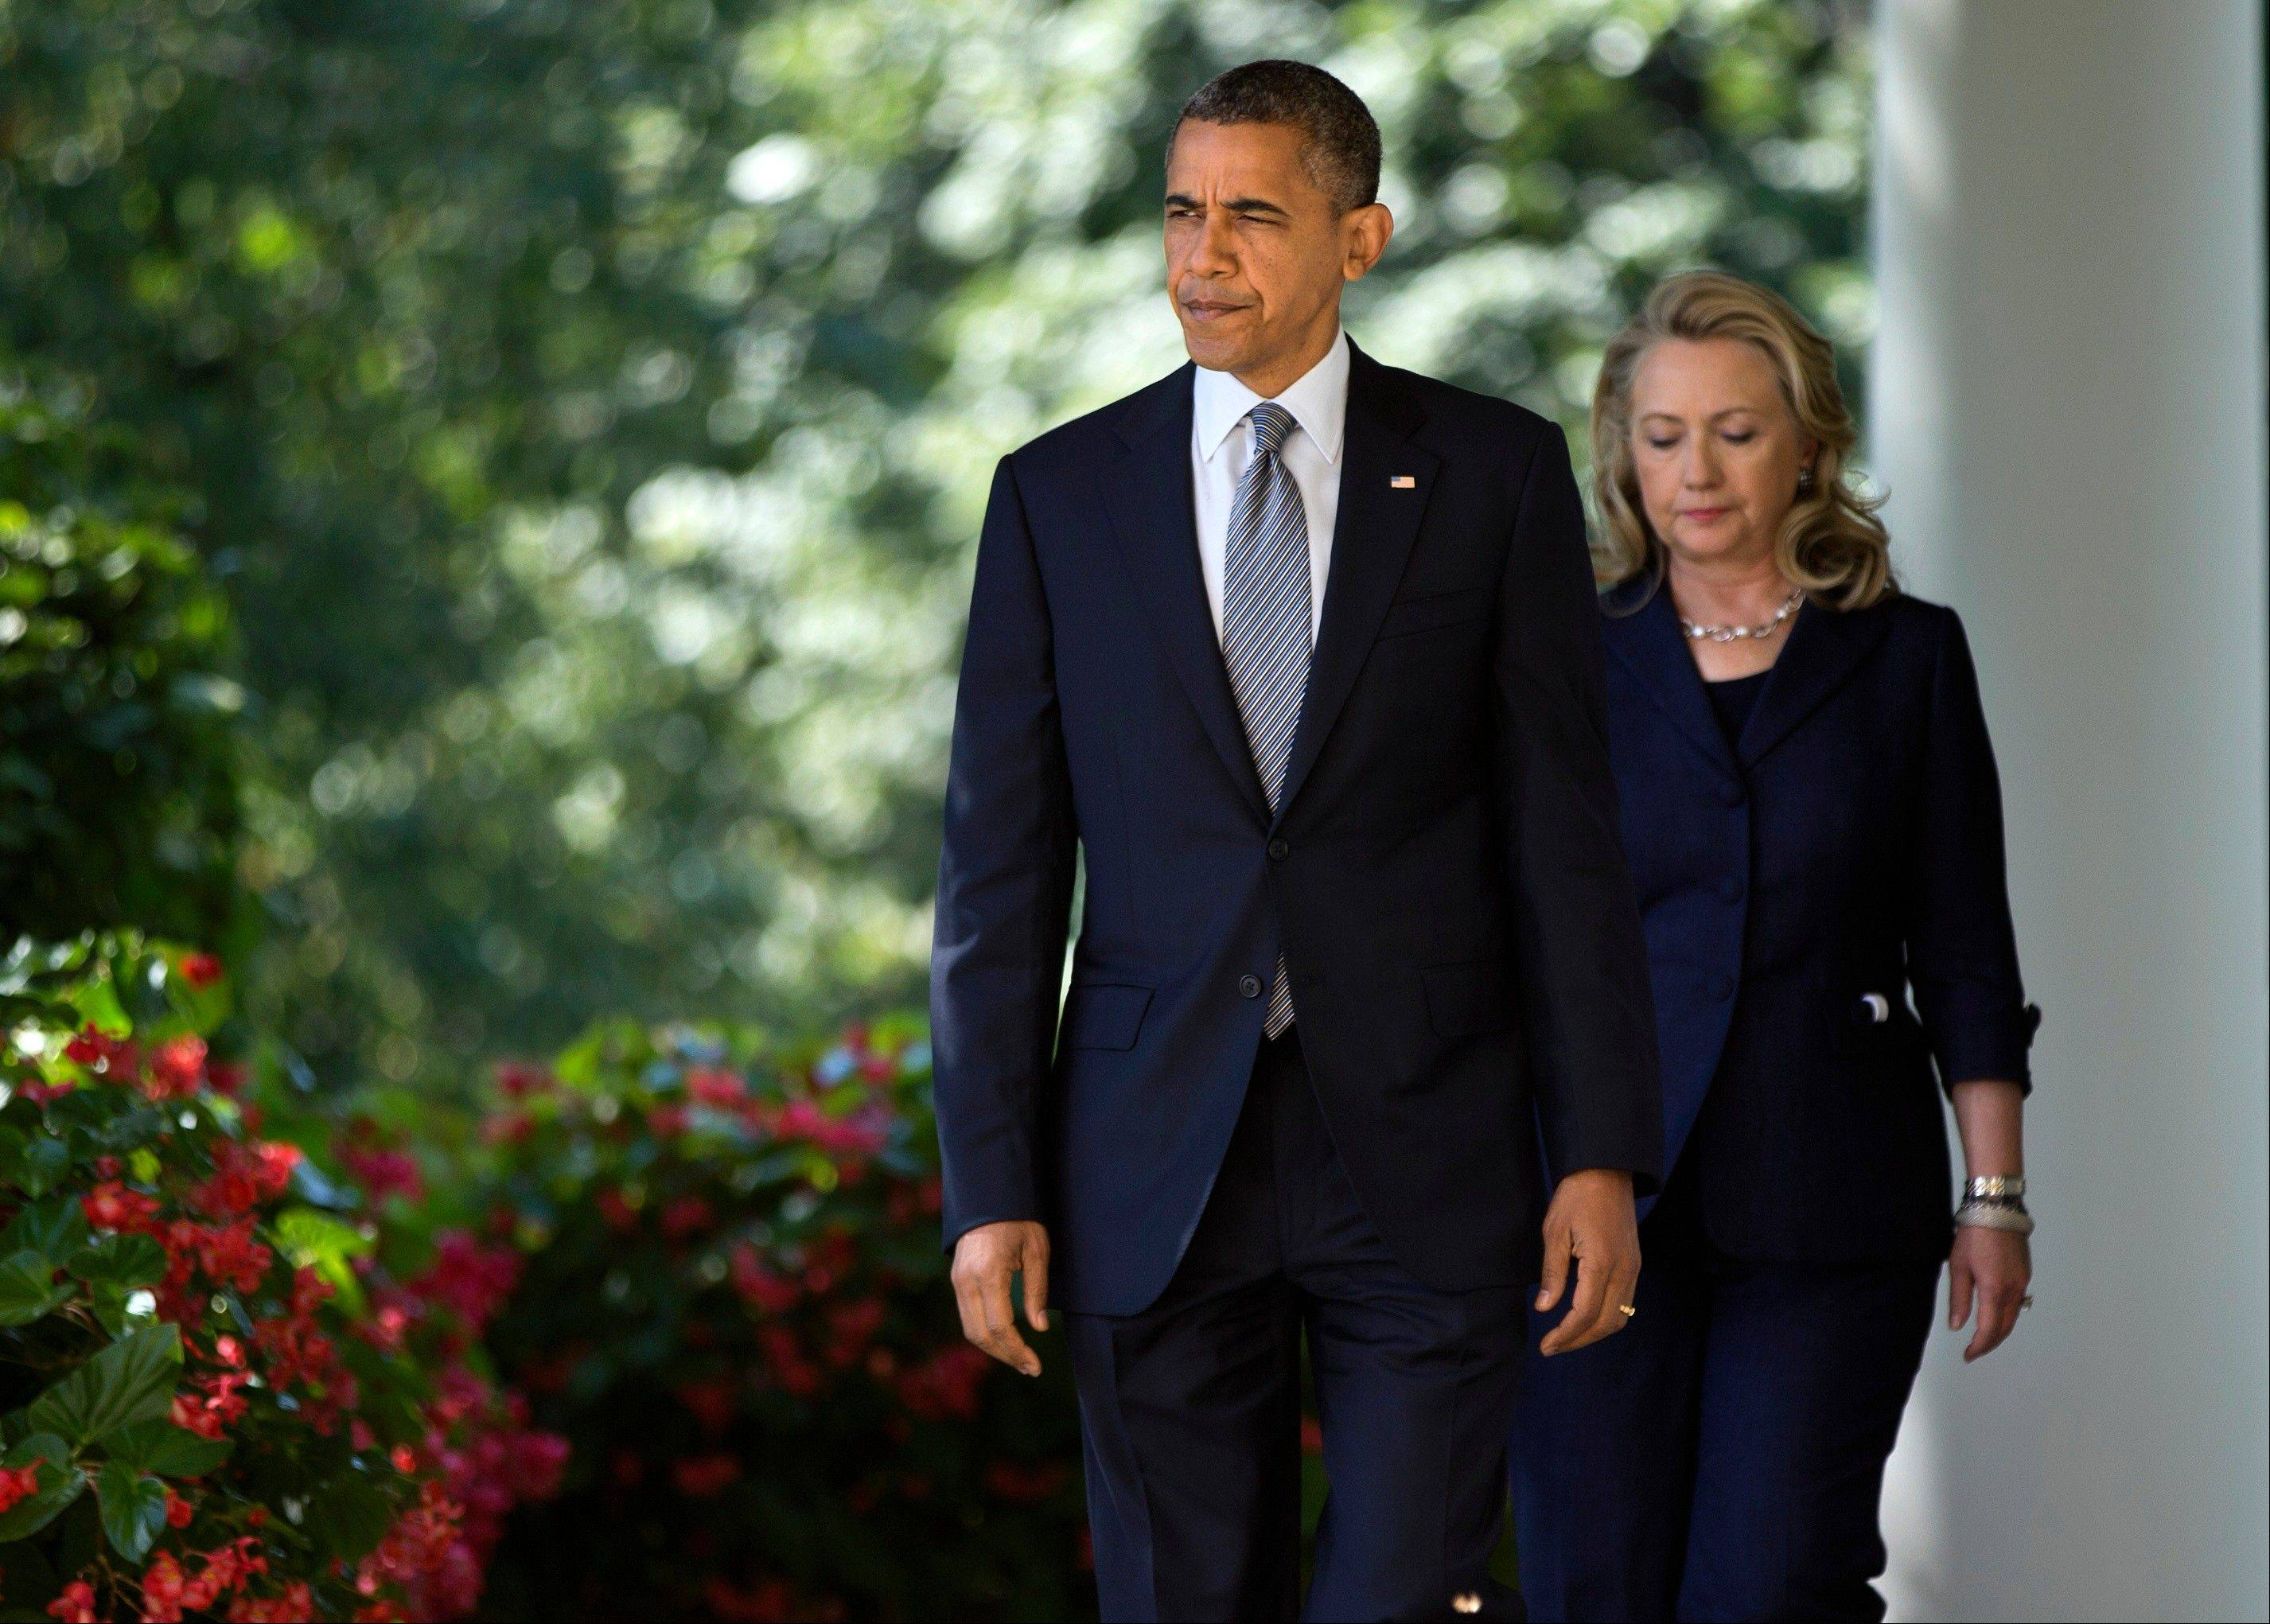 Secretary of State Hillary Clinton follows President Barack Obama to the Rose Garden of the White House in Washington, Wednesday, Sept. 12, 2012, to deliver a statement on the death of U.S. ambassador to Libya Christopher Stevens.